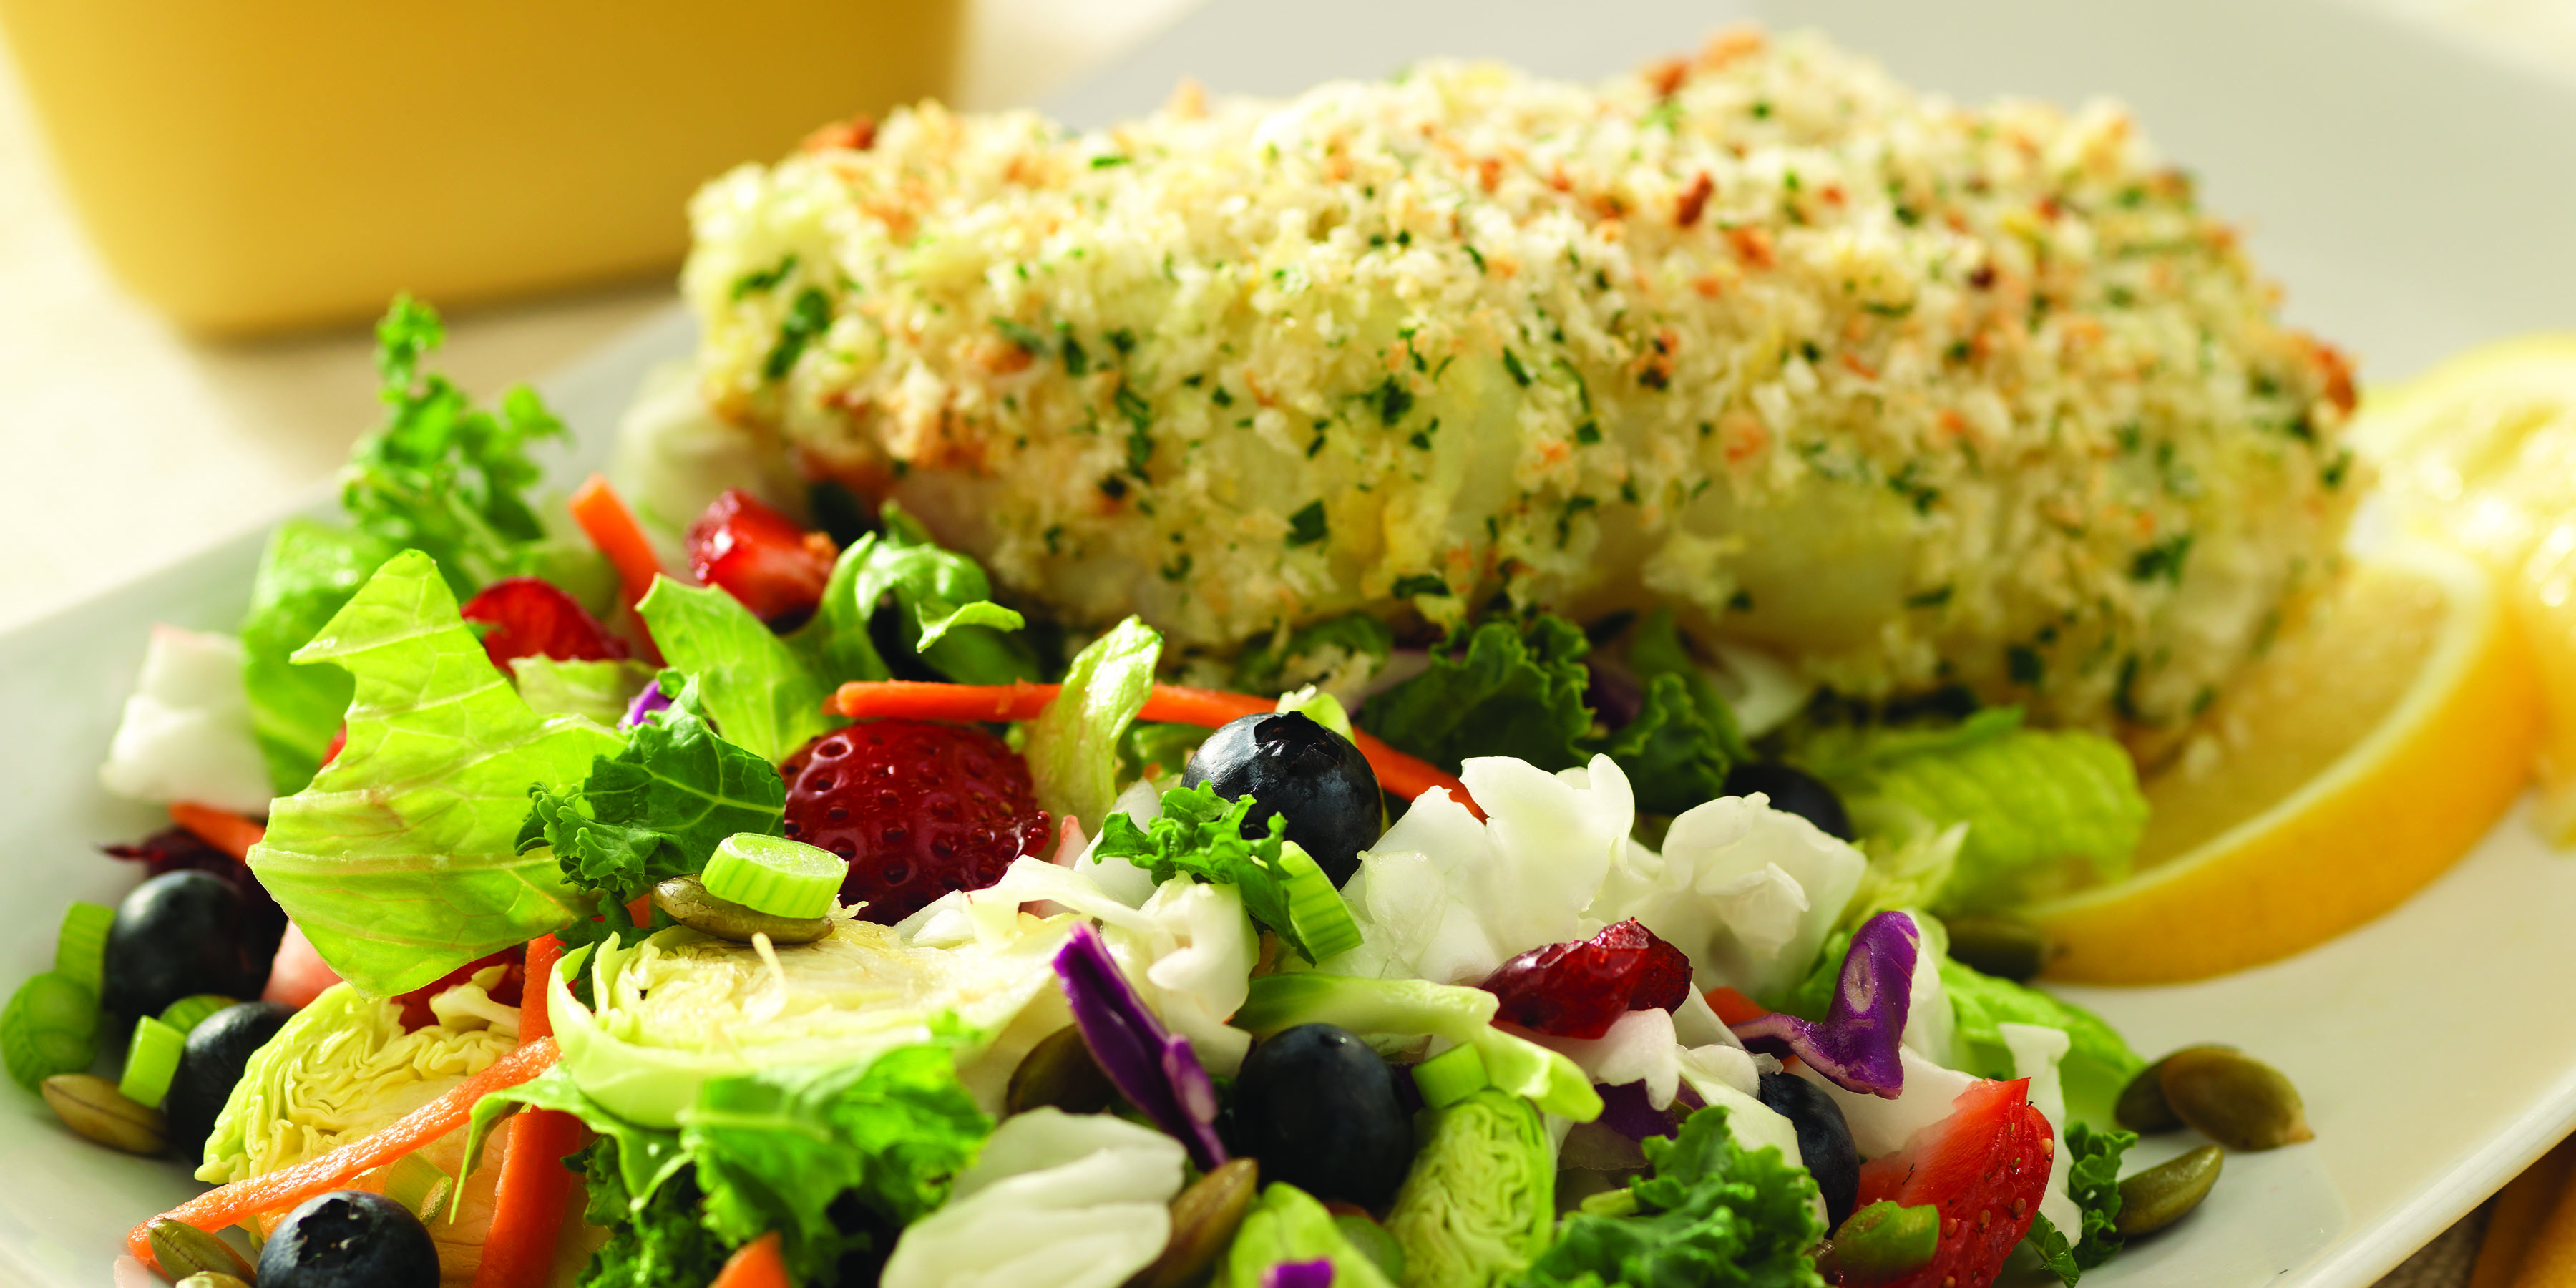 Lemon-Herb Crusted Cod with Berries and Chopped Salad